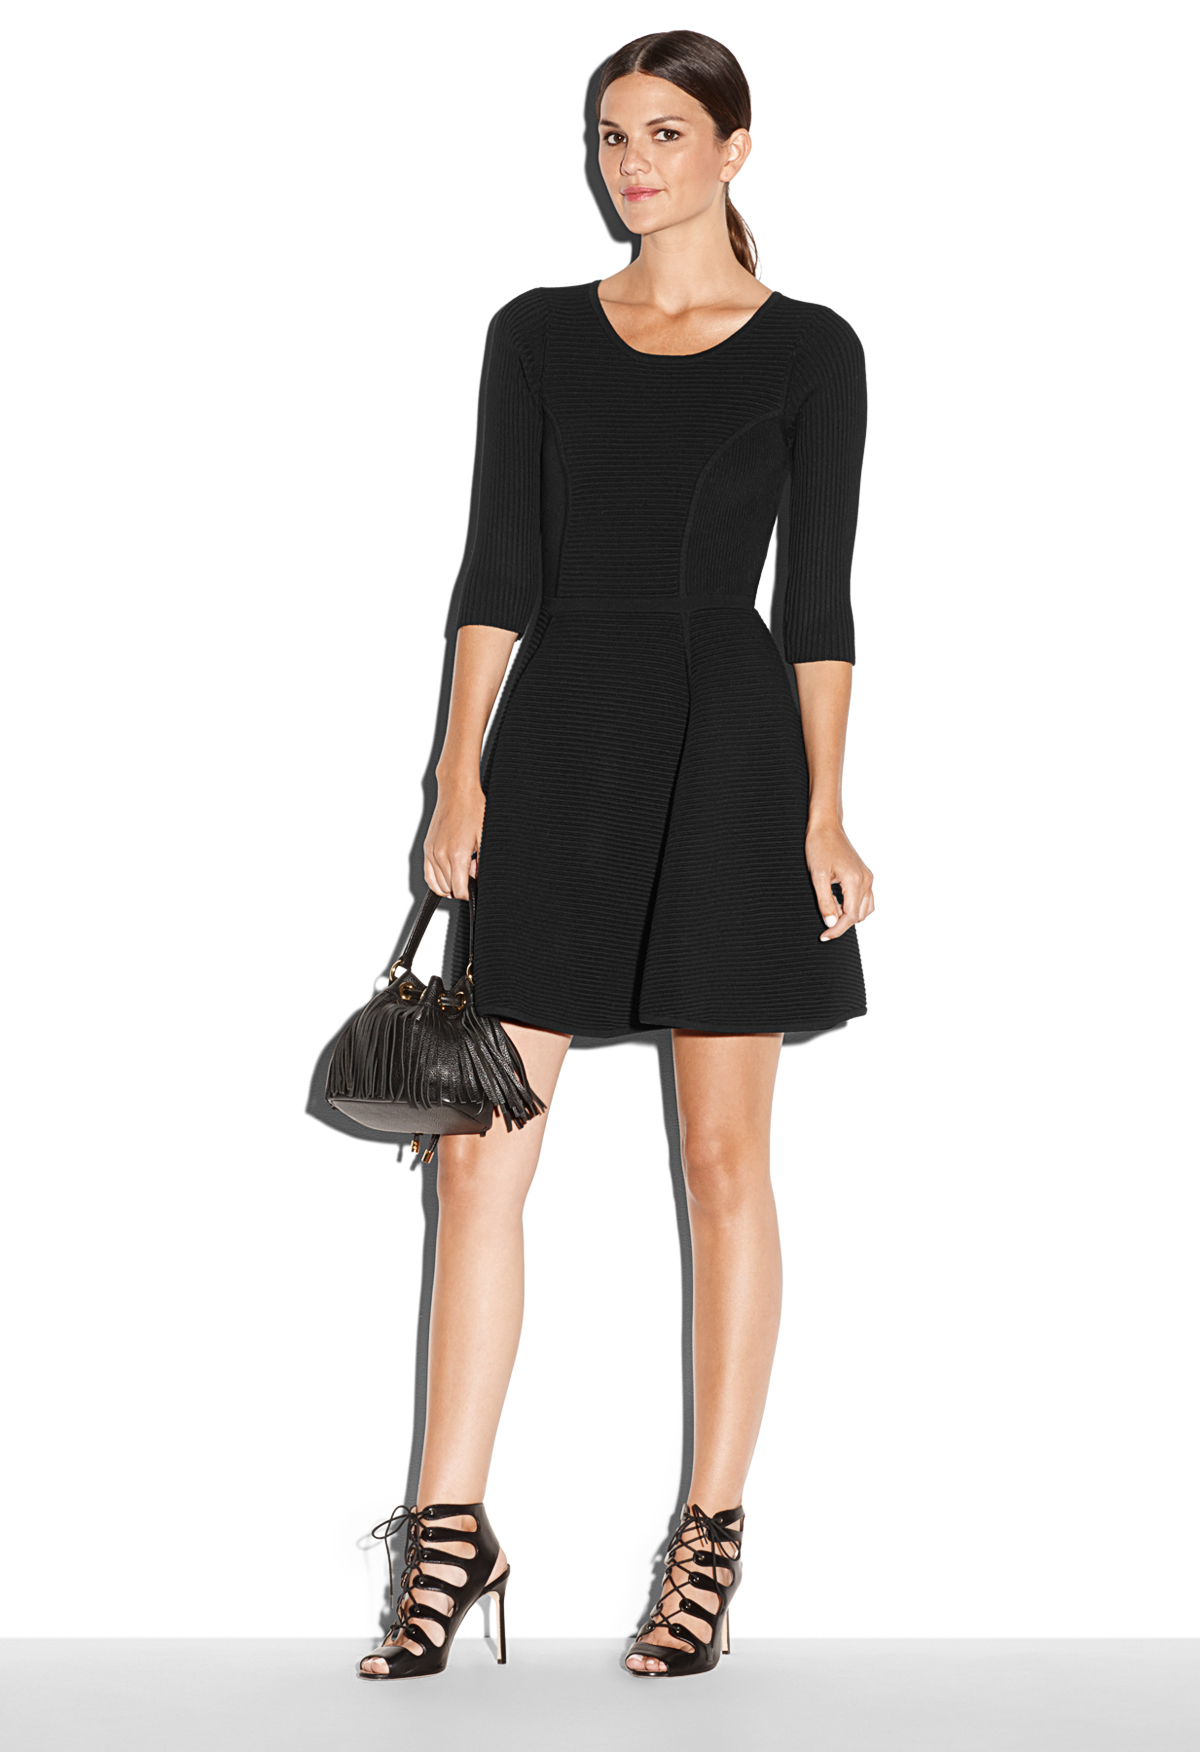 Lyst  Milly Textured Fit And Flare Dress in Black